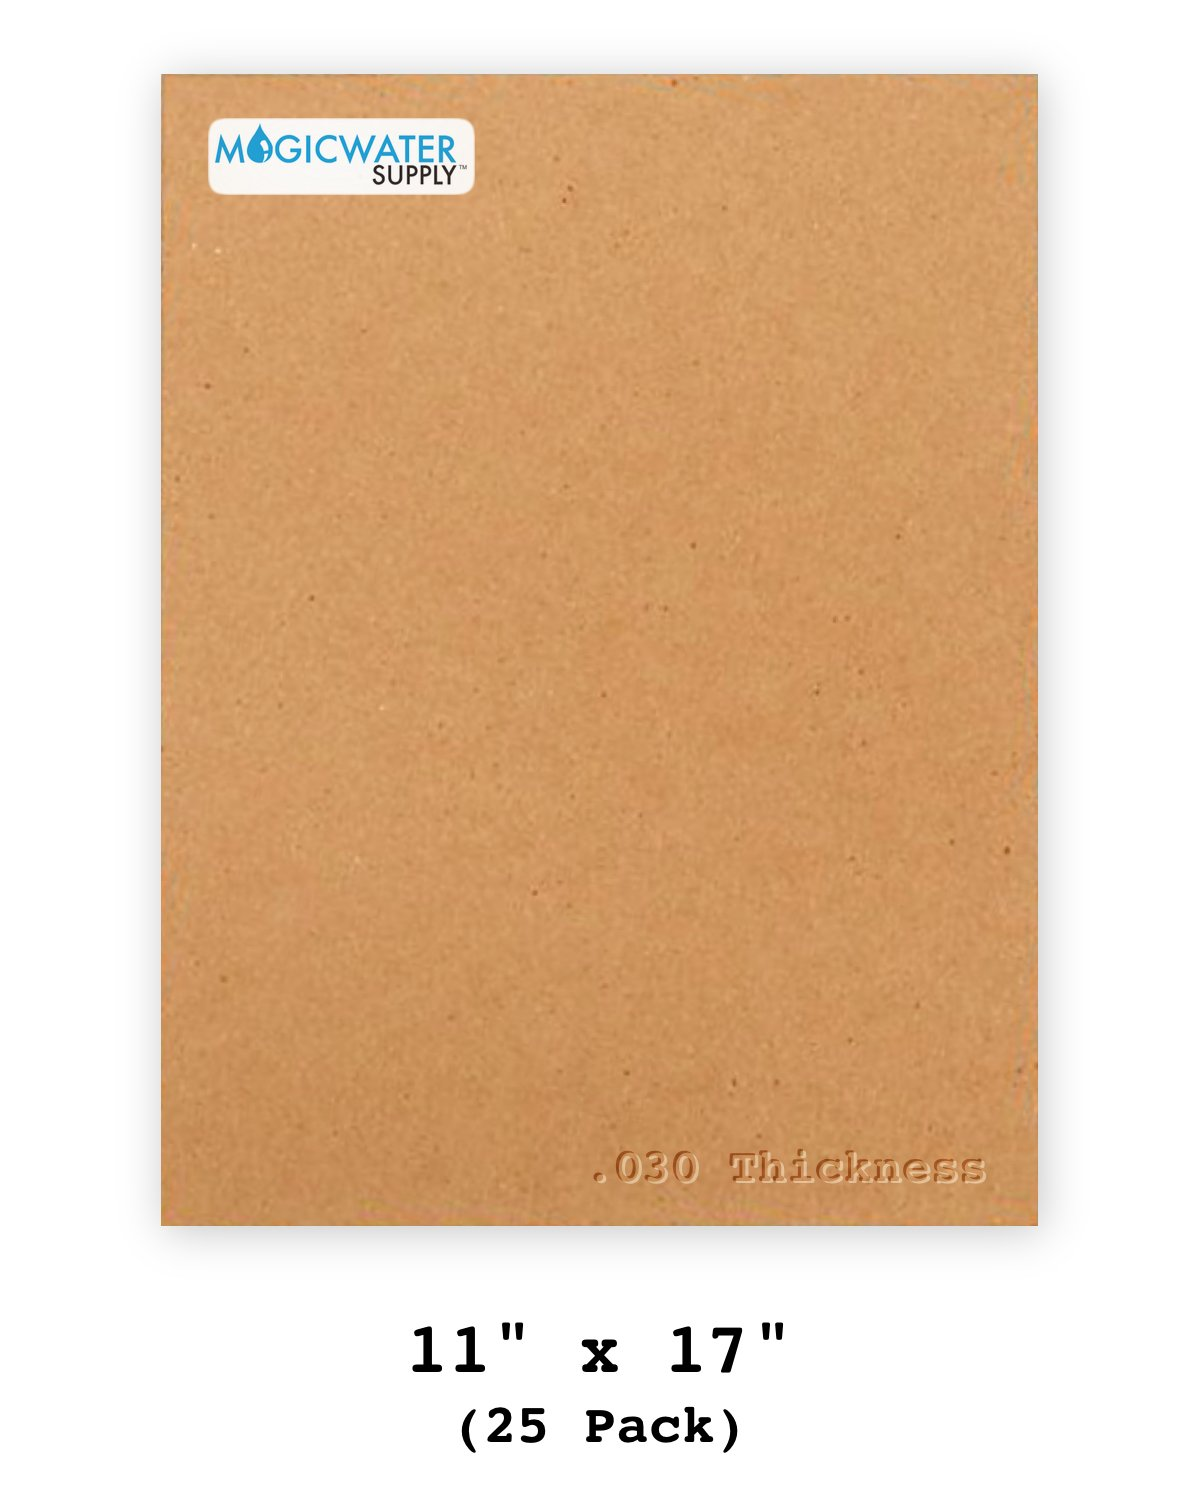 25 Chipboard Sheets 11 x 17 inch - 30pt (Point) Medium Weight Brown Kraft Cardboard for Scrapbooking & Picture Frame Backing (.030 Caliper Thick) Paper Board | MagicWater Supply